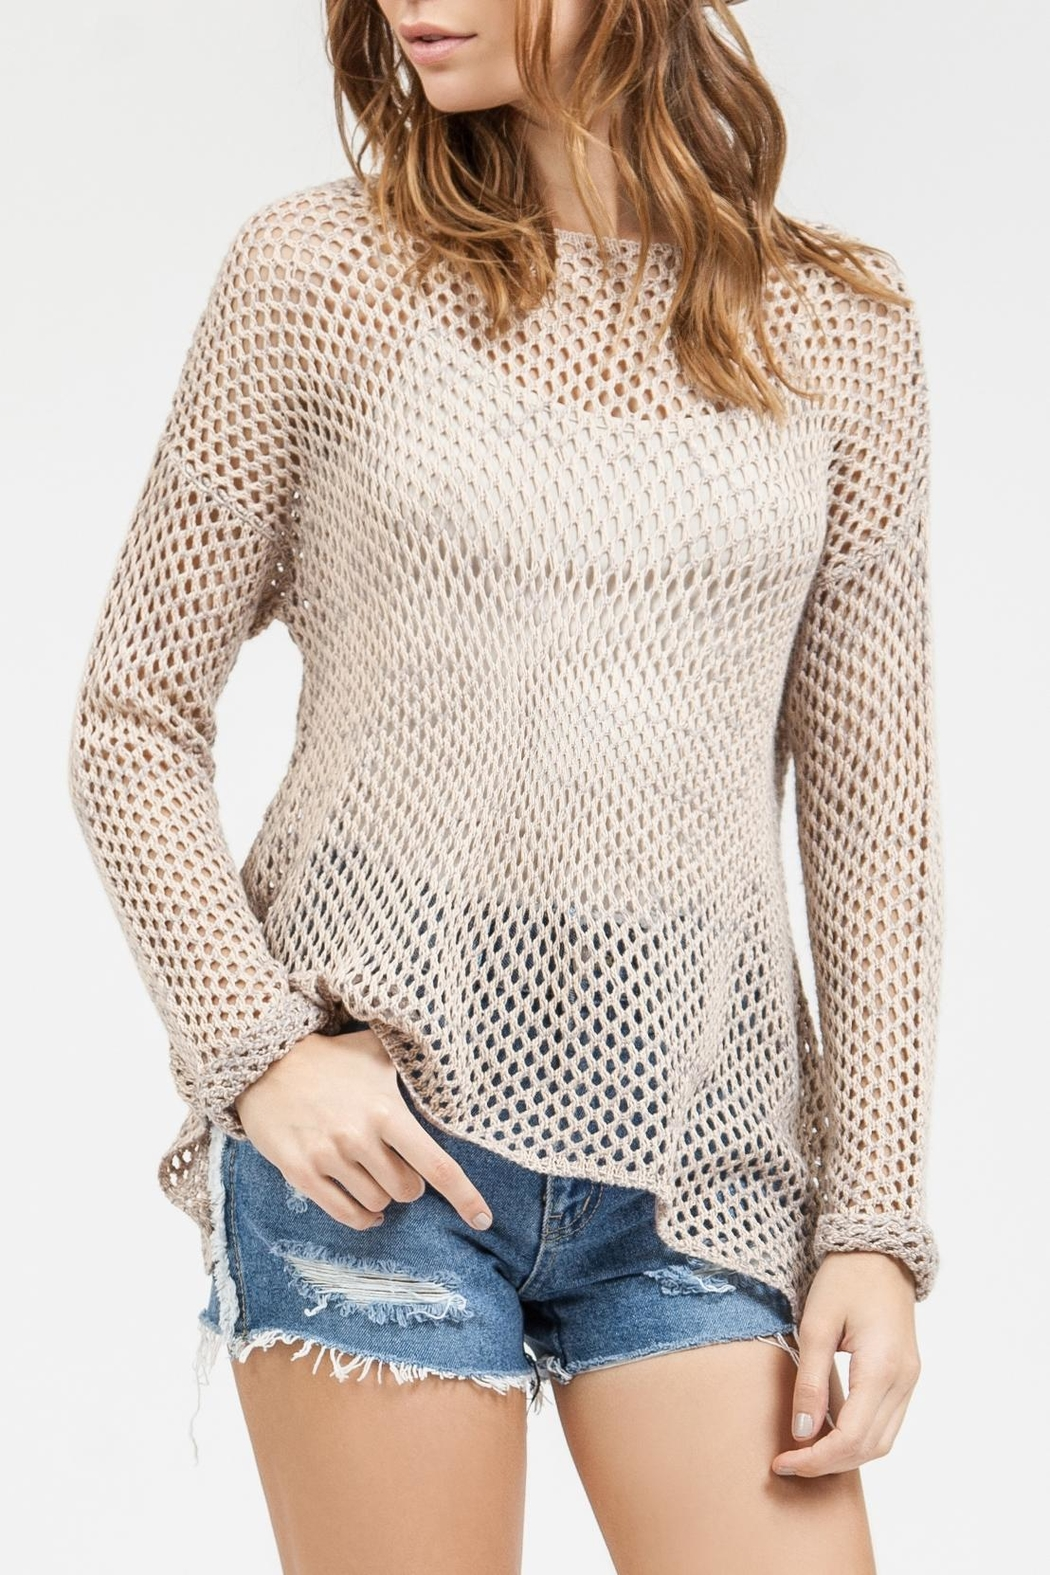 Blu Pepper Crochet Sweater Top - Front Full Image